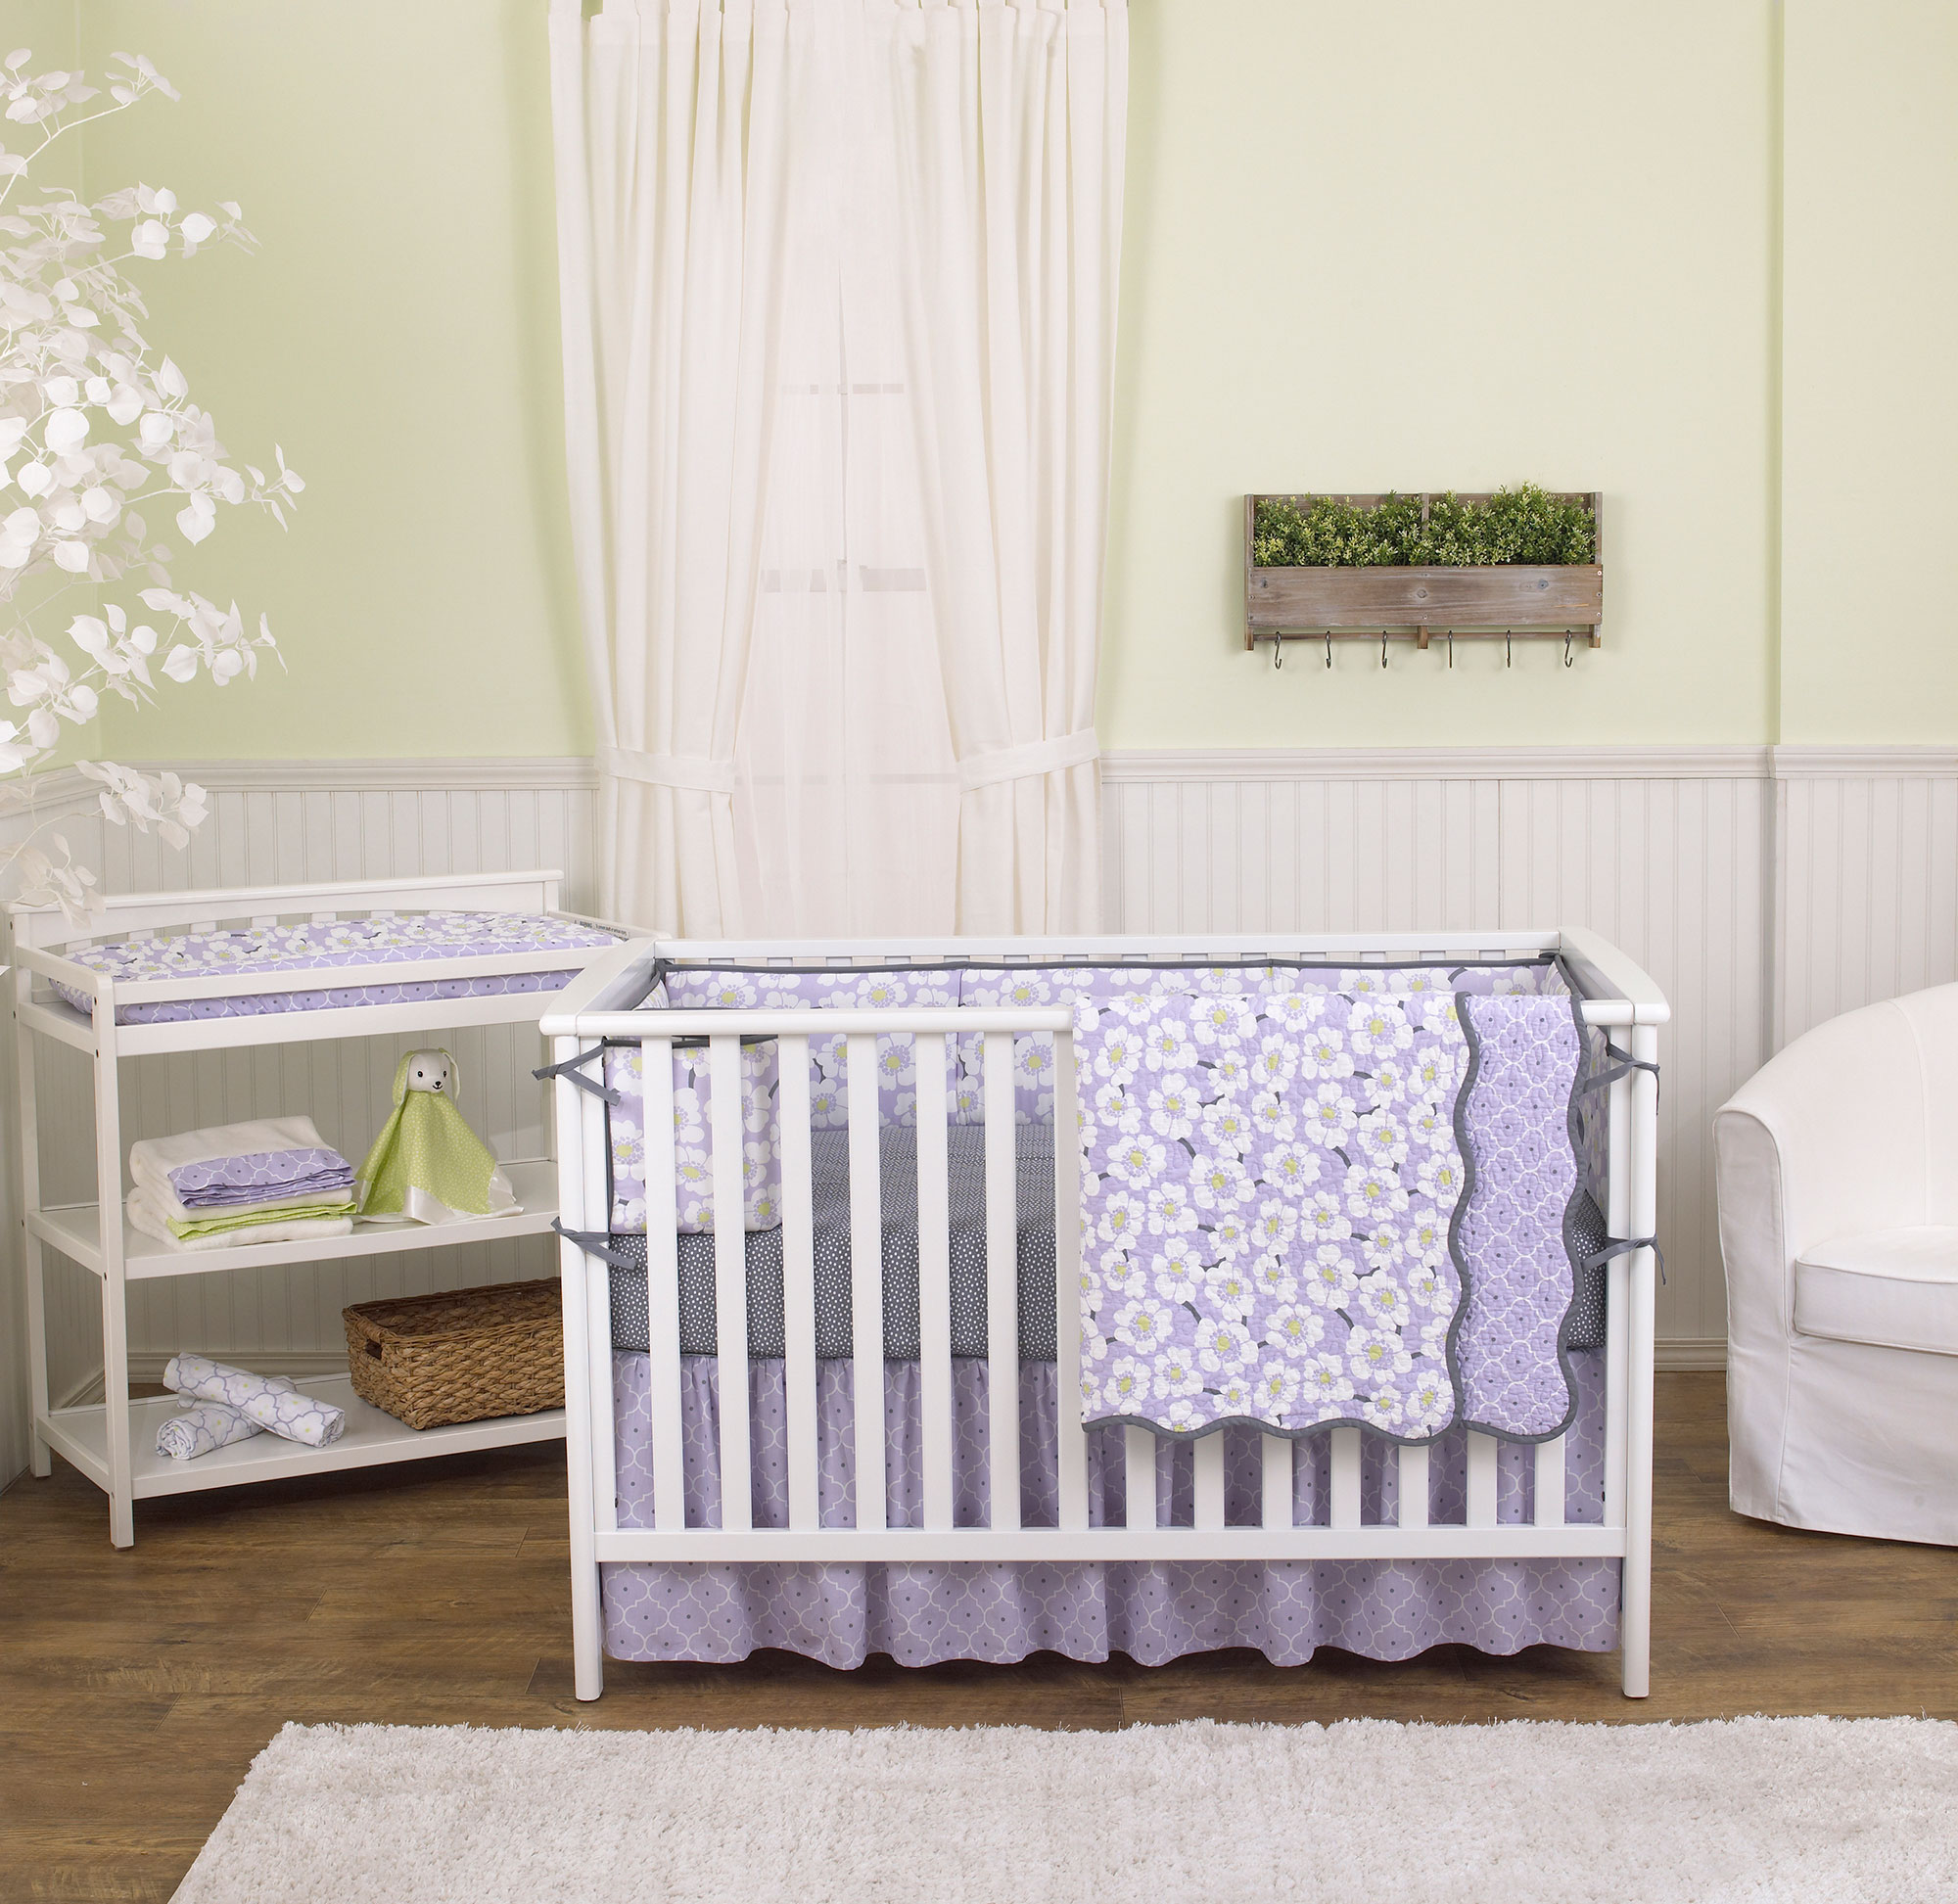 Lavender Purple Poppy Floral 5 Piece Crib Bedding Set with ...